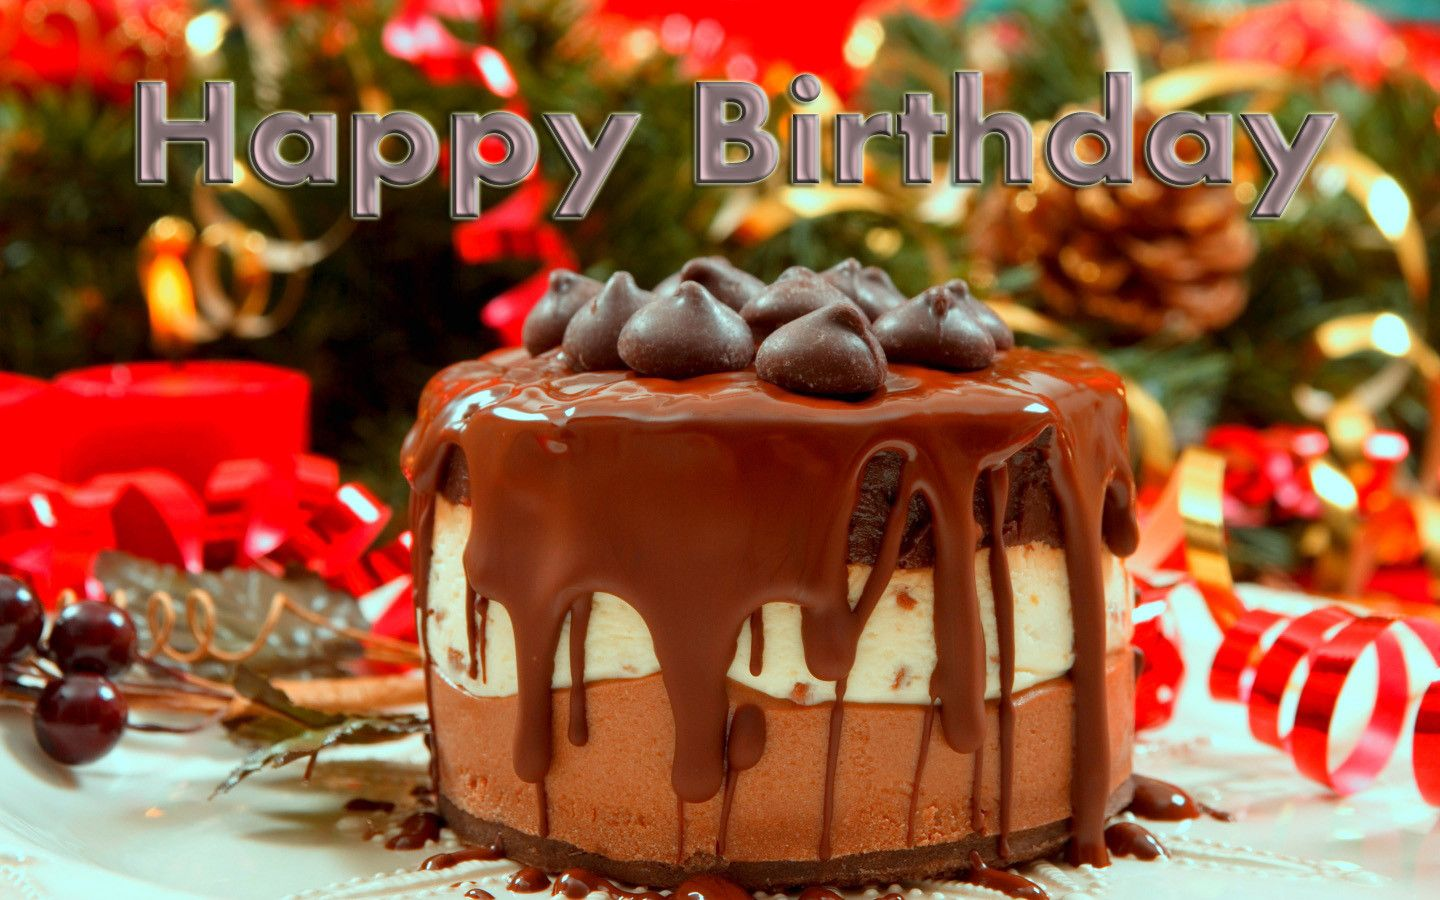 Birthday Cake Wallpapers For Friends Hd Images 3 HD